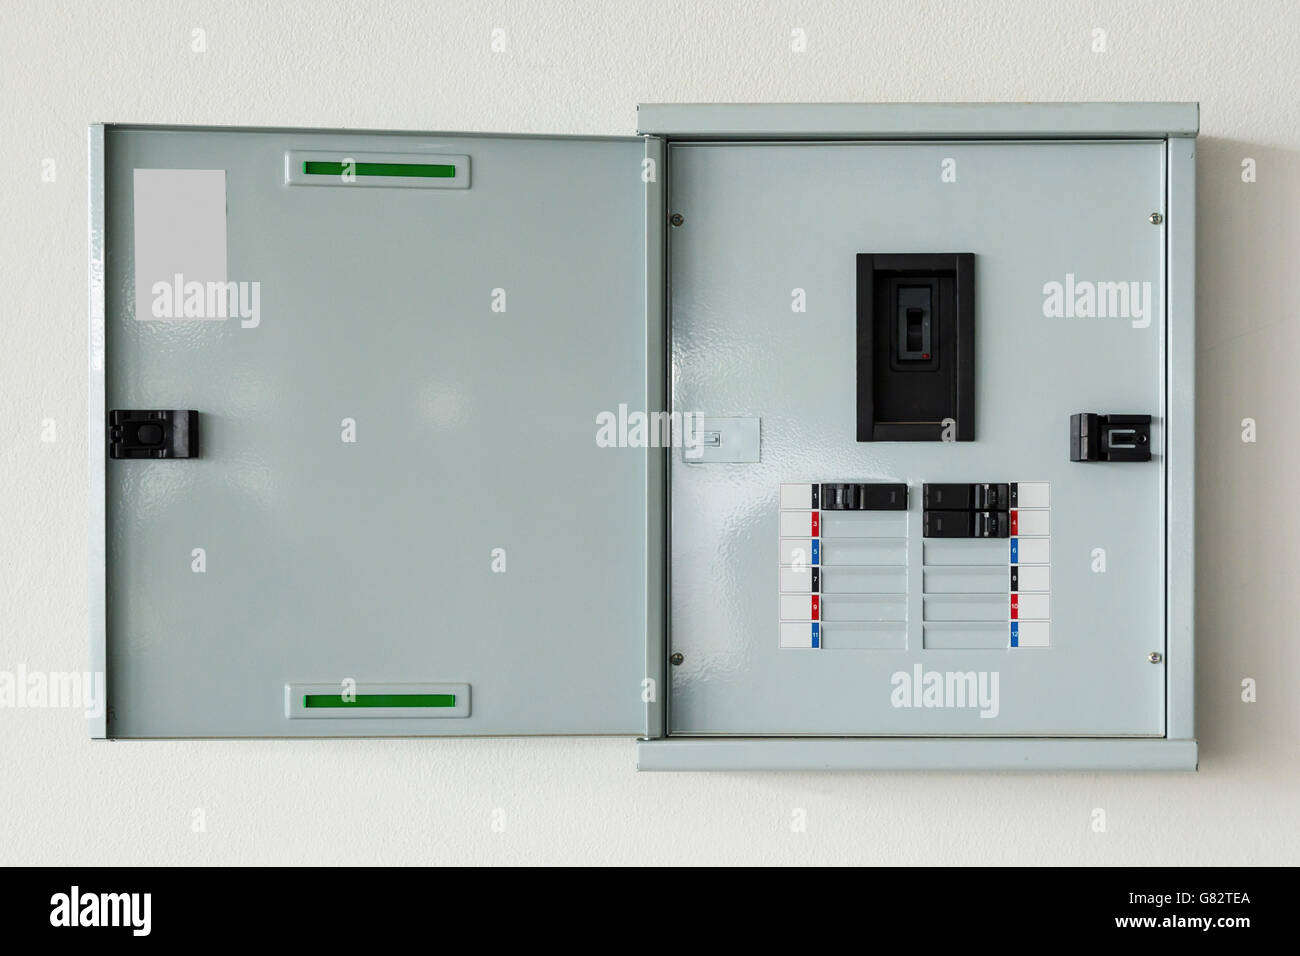 close up control box open on wall at home - Stock Image